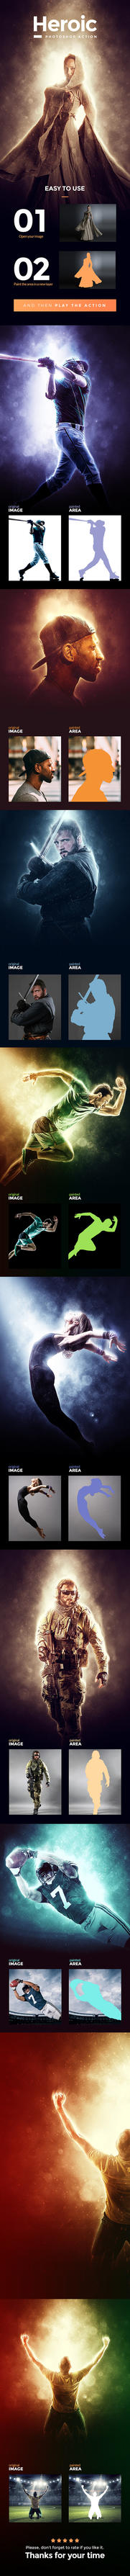 Heroic Photoshop Action by GraphicAssets